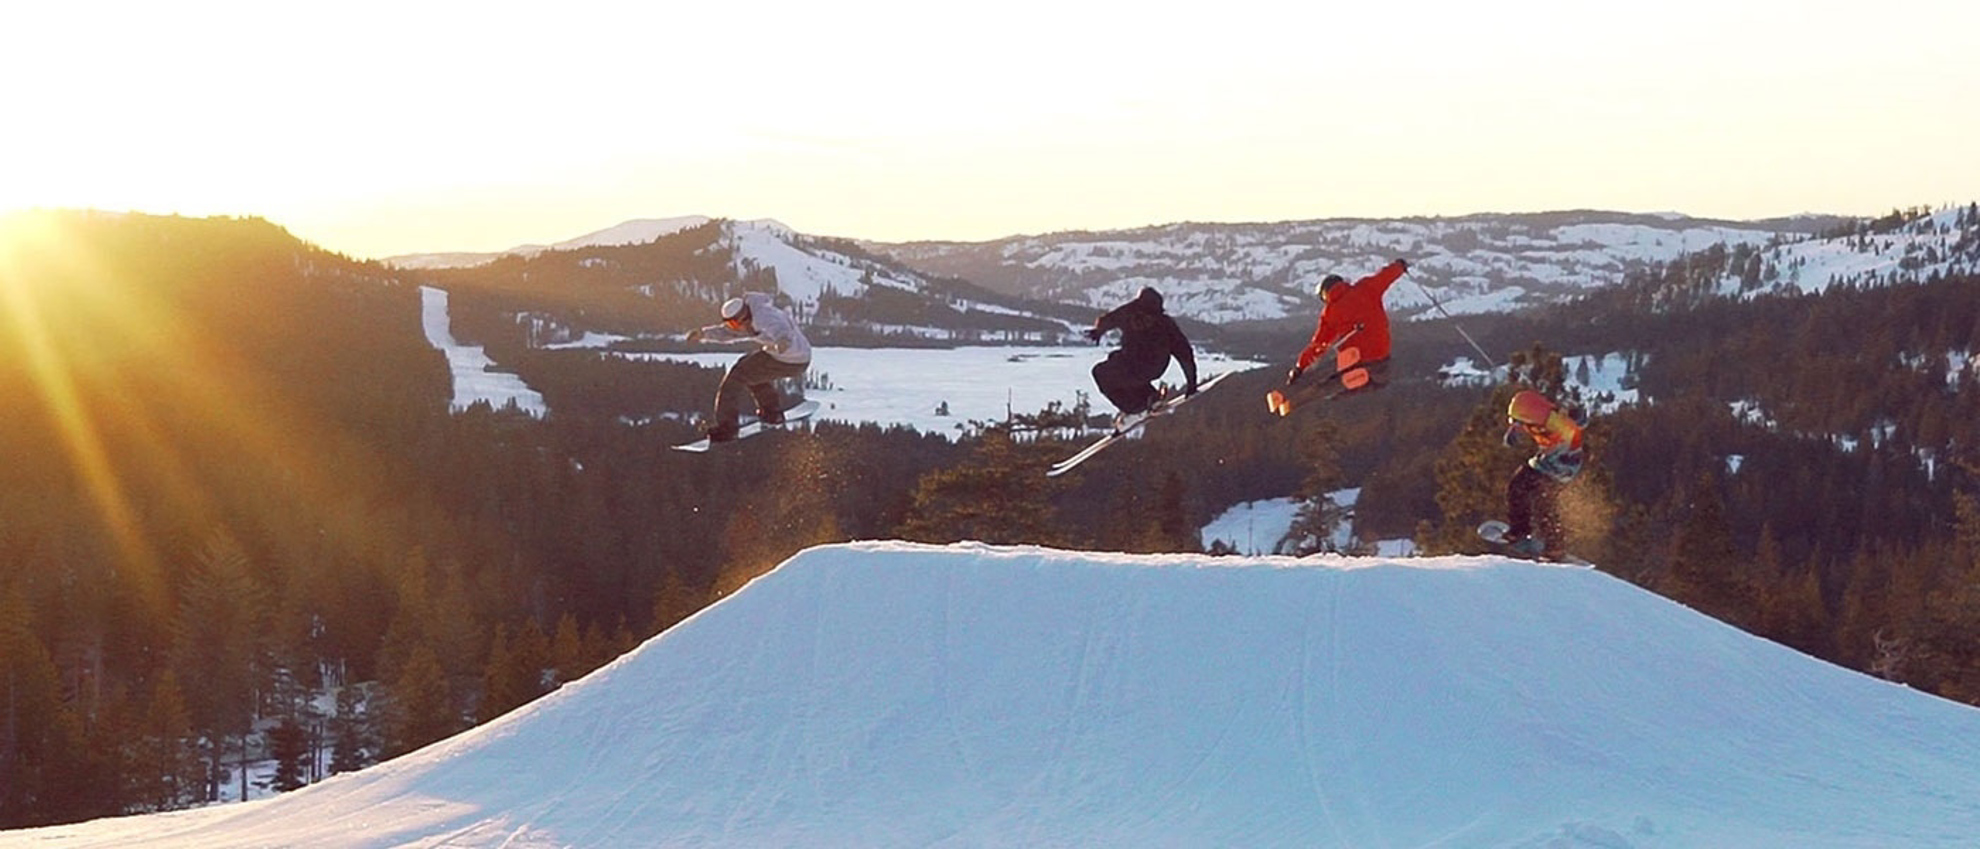 Terrain Park Sunset Group